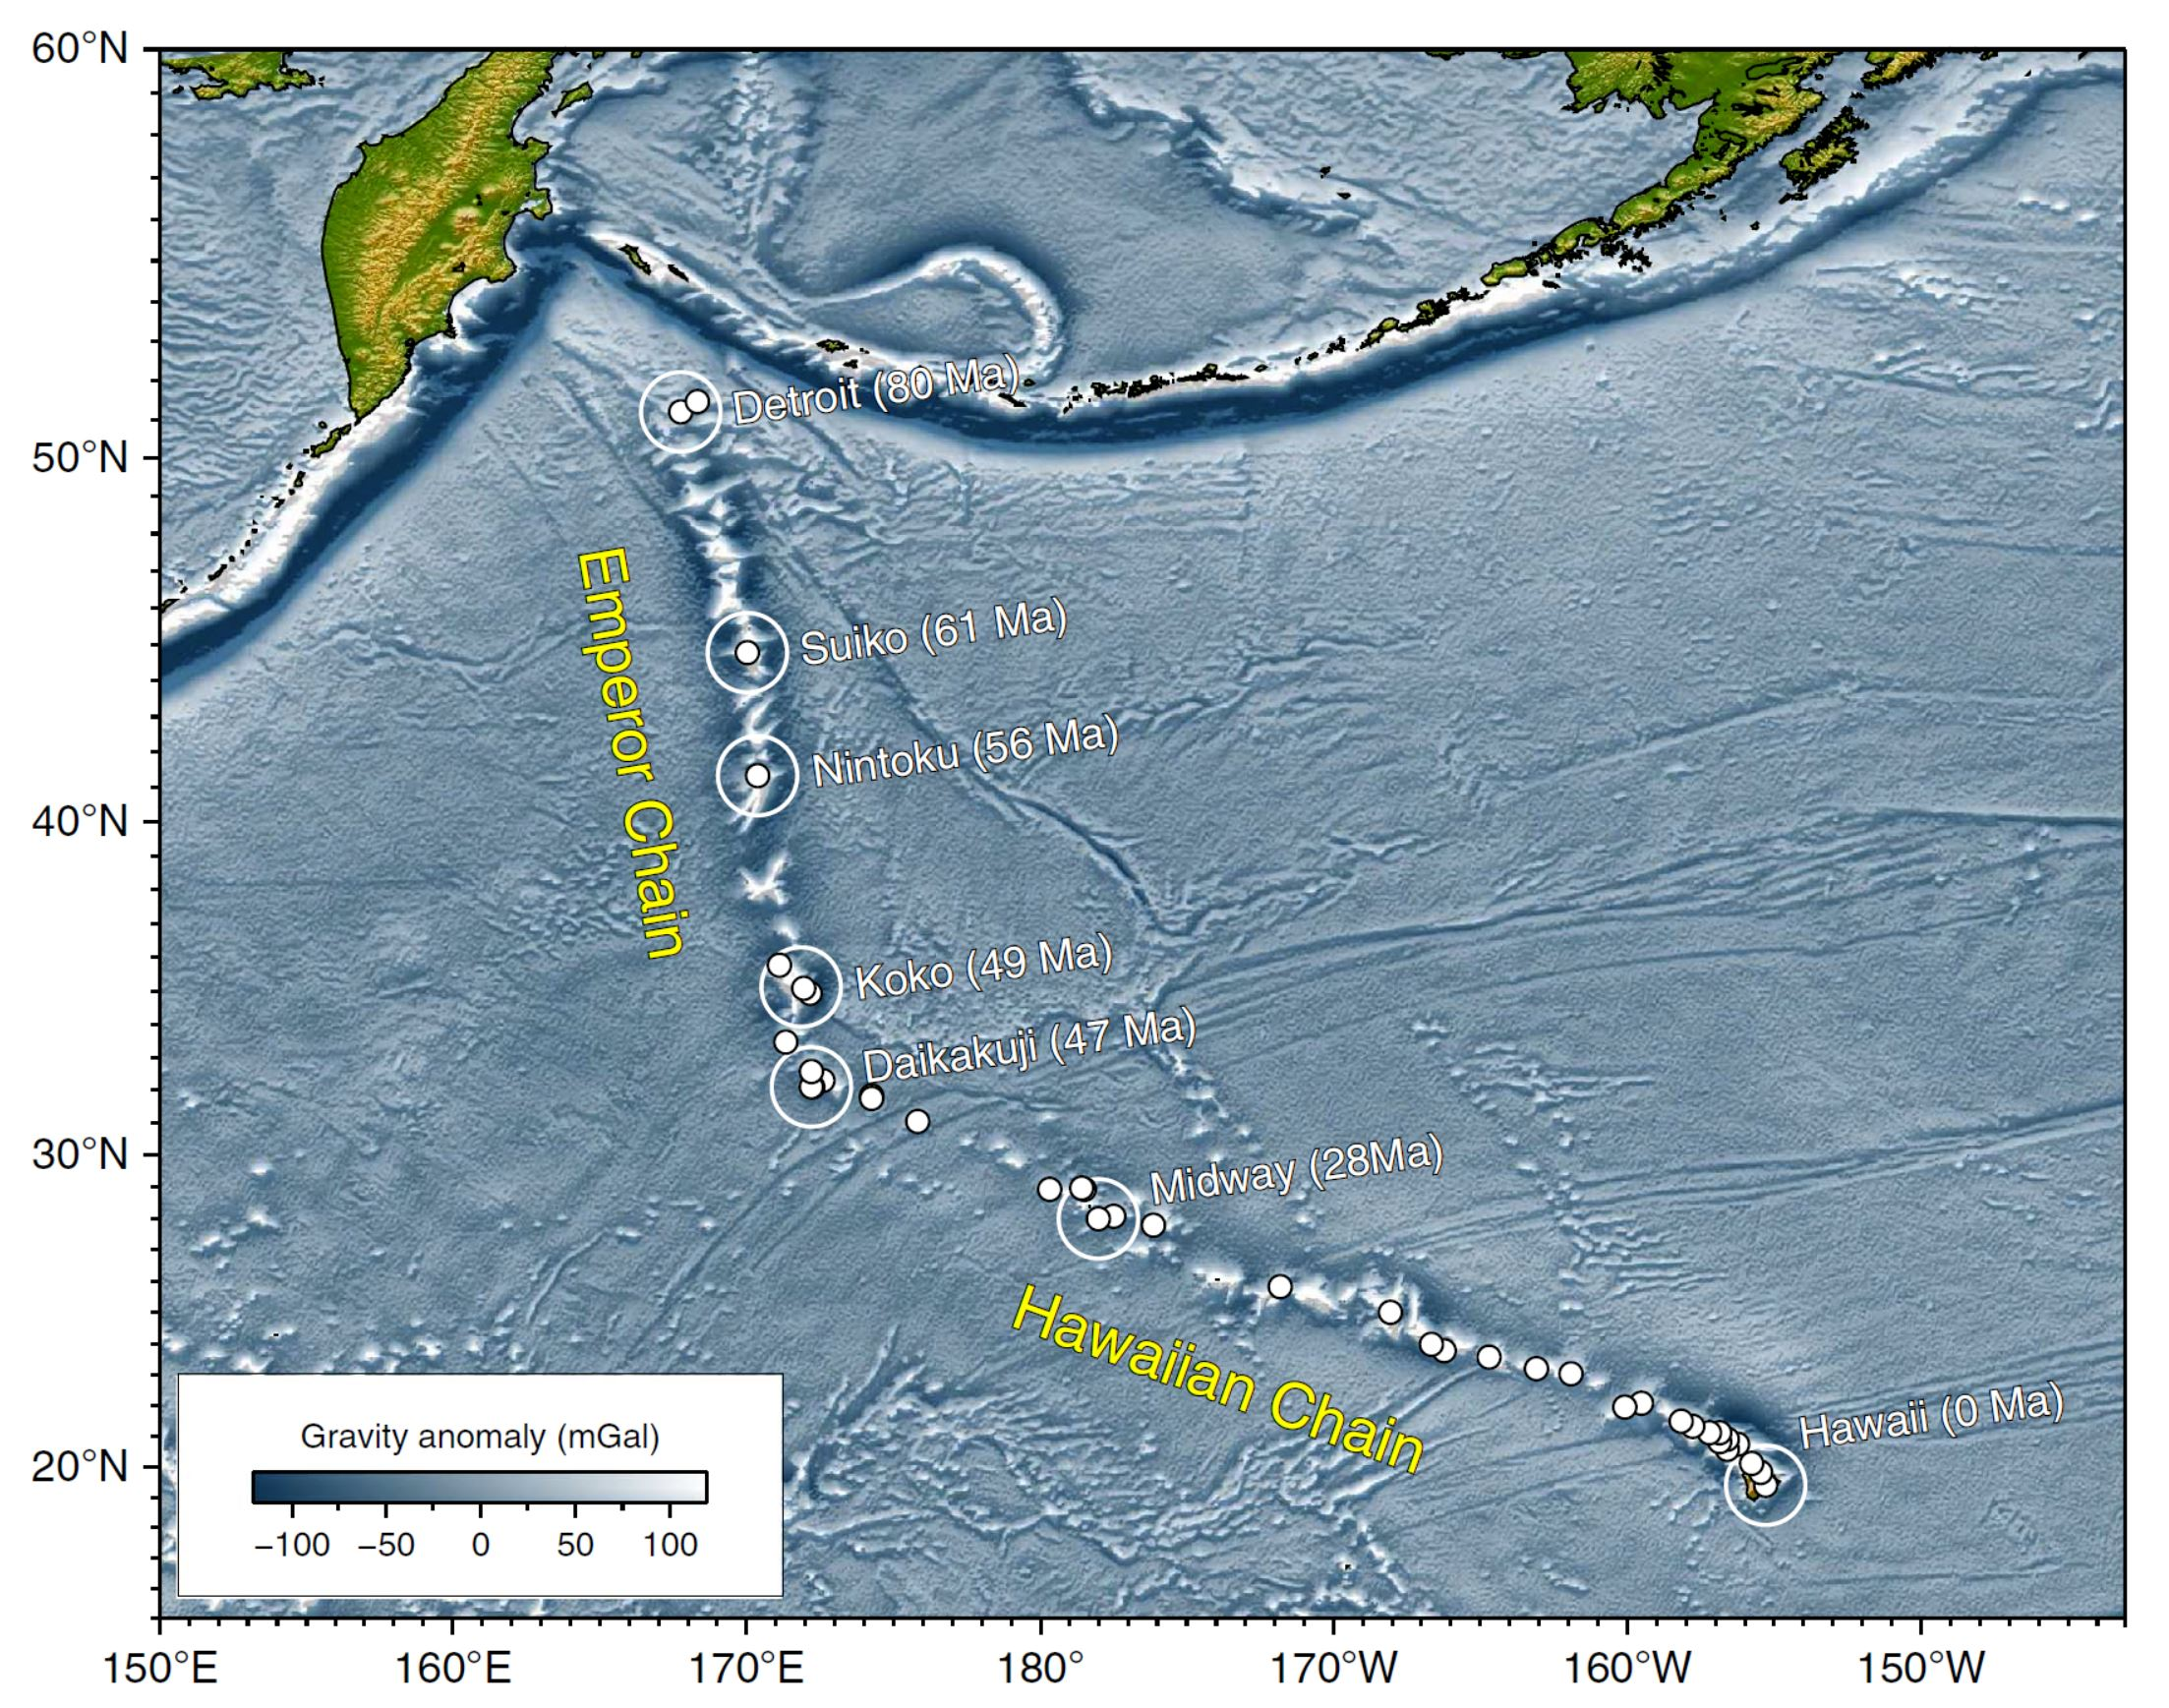 Jay Patton Online The Center Body And Range Of Technically Lg Led 29 Mt 47 A White Dots Are Locations Radiometrically Dated Seamounts Atolls Islands Based On Compilations Doubrovine Et Al Oconnor